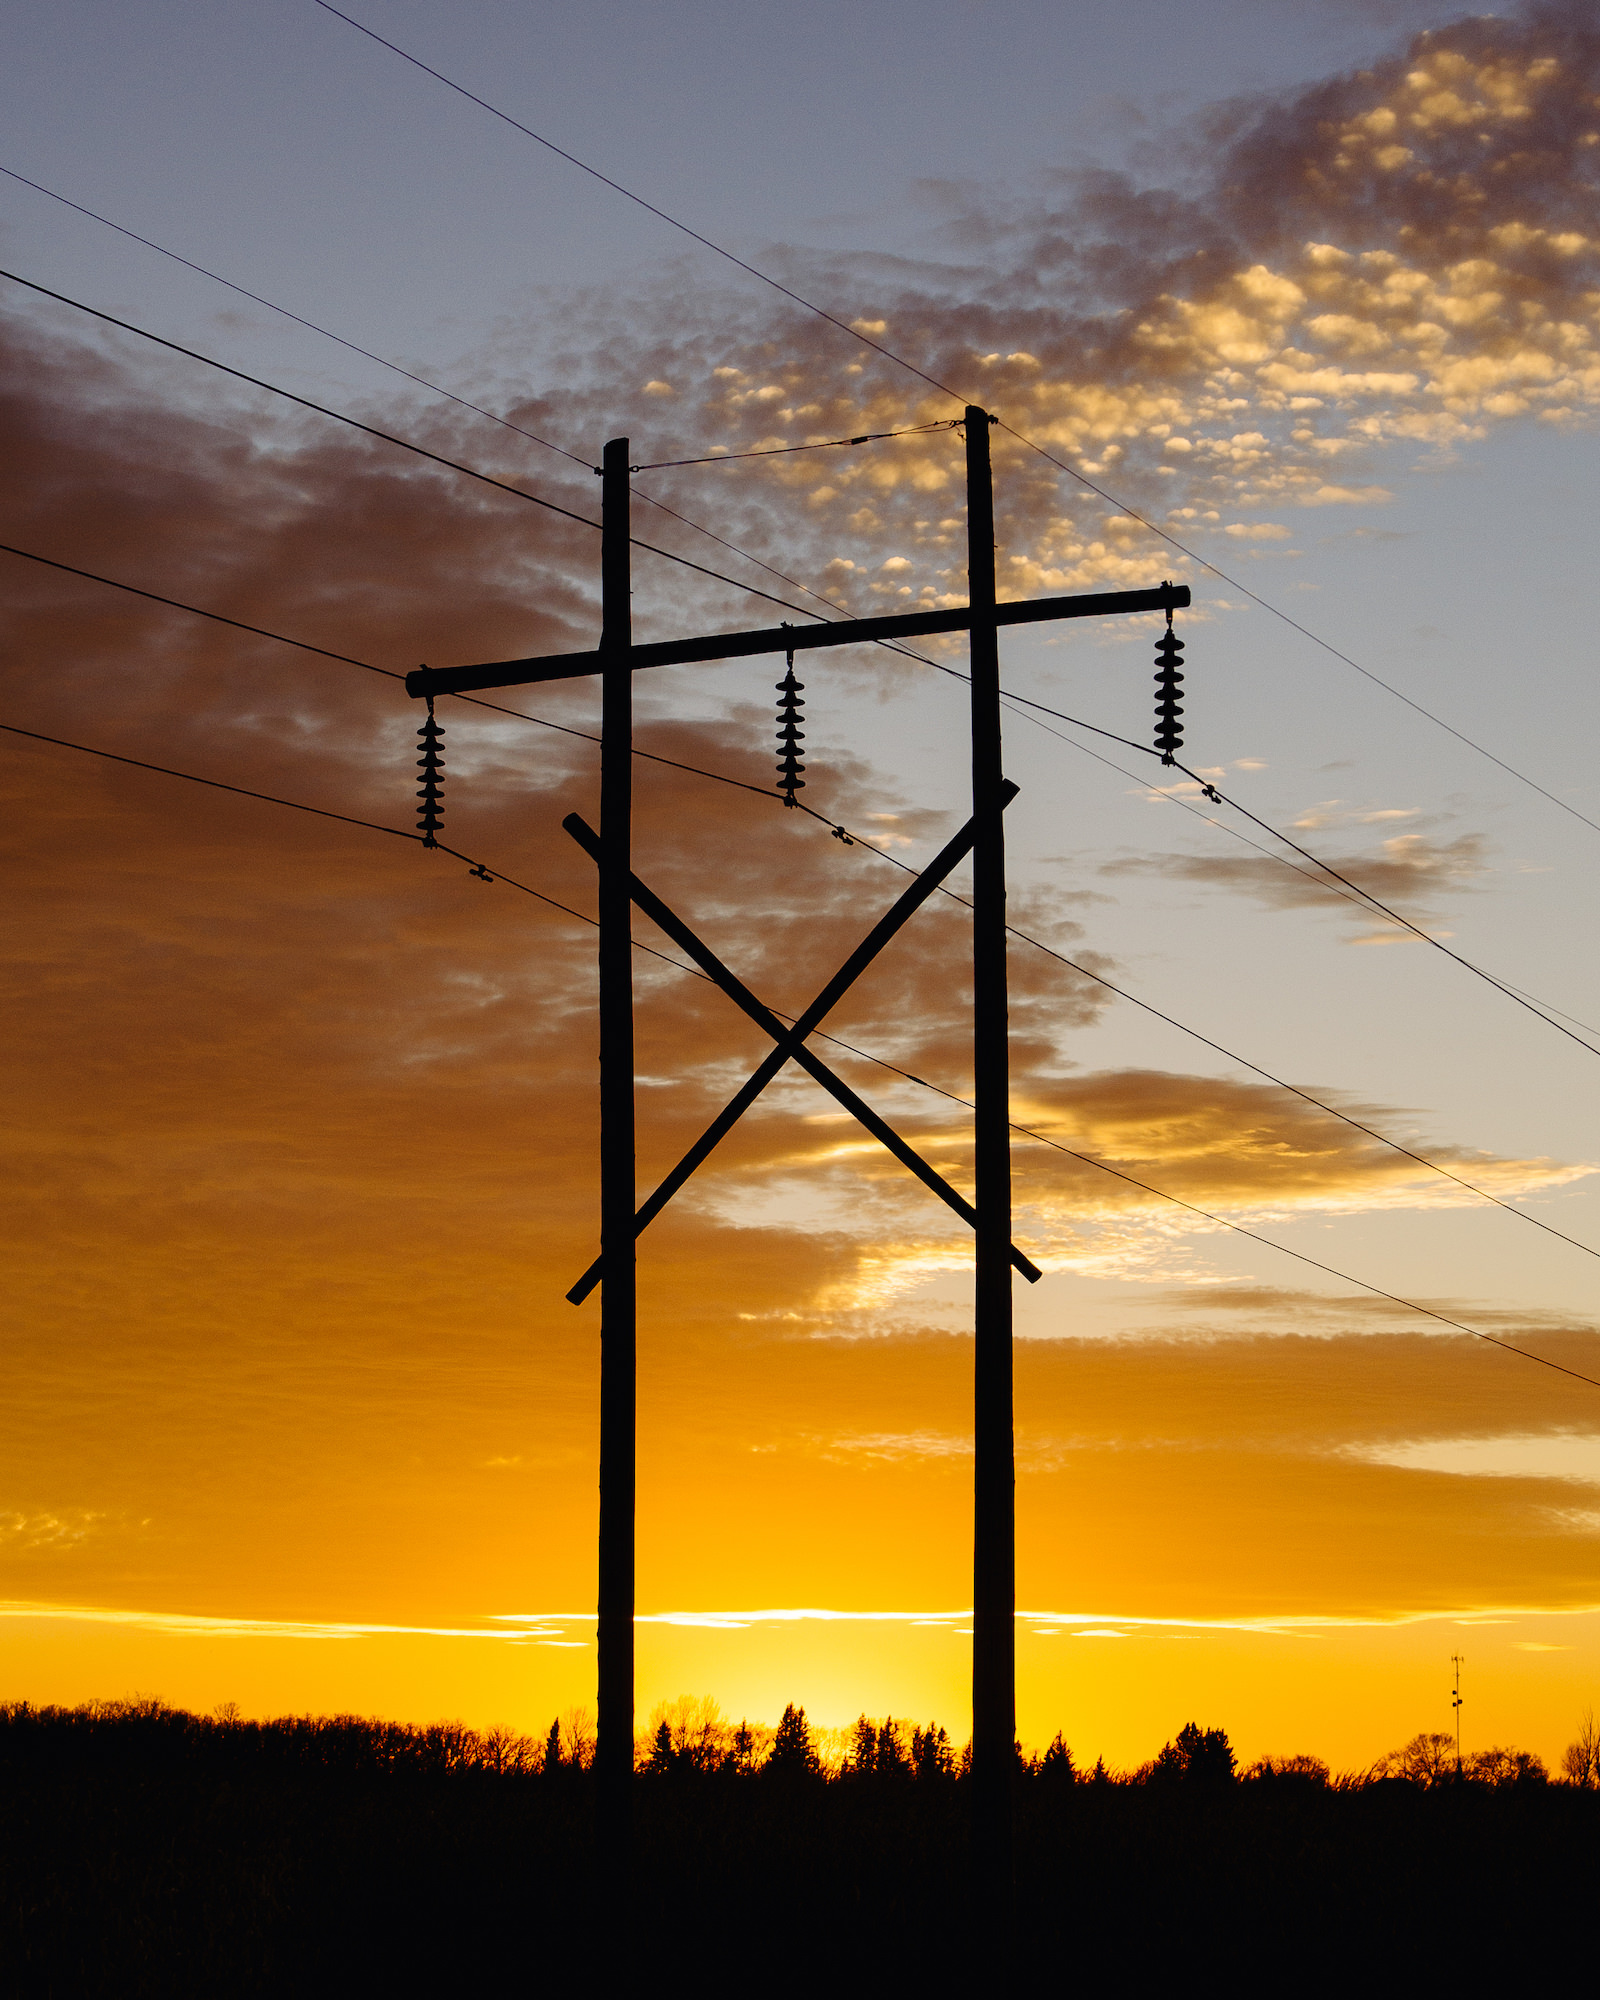 polar-visual-taylor-sheppard-photography-photo-video-motion-design-graphic-stonewall-winnipeg-manitoba-sunset-powerline-clouds-sky-color-colour.jpg